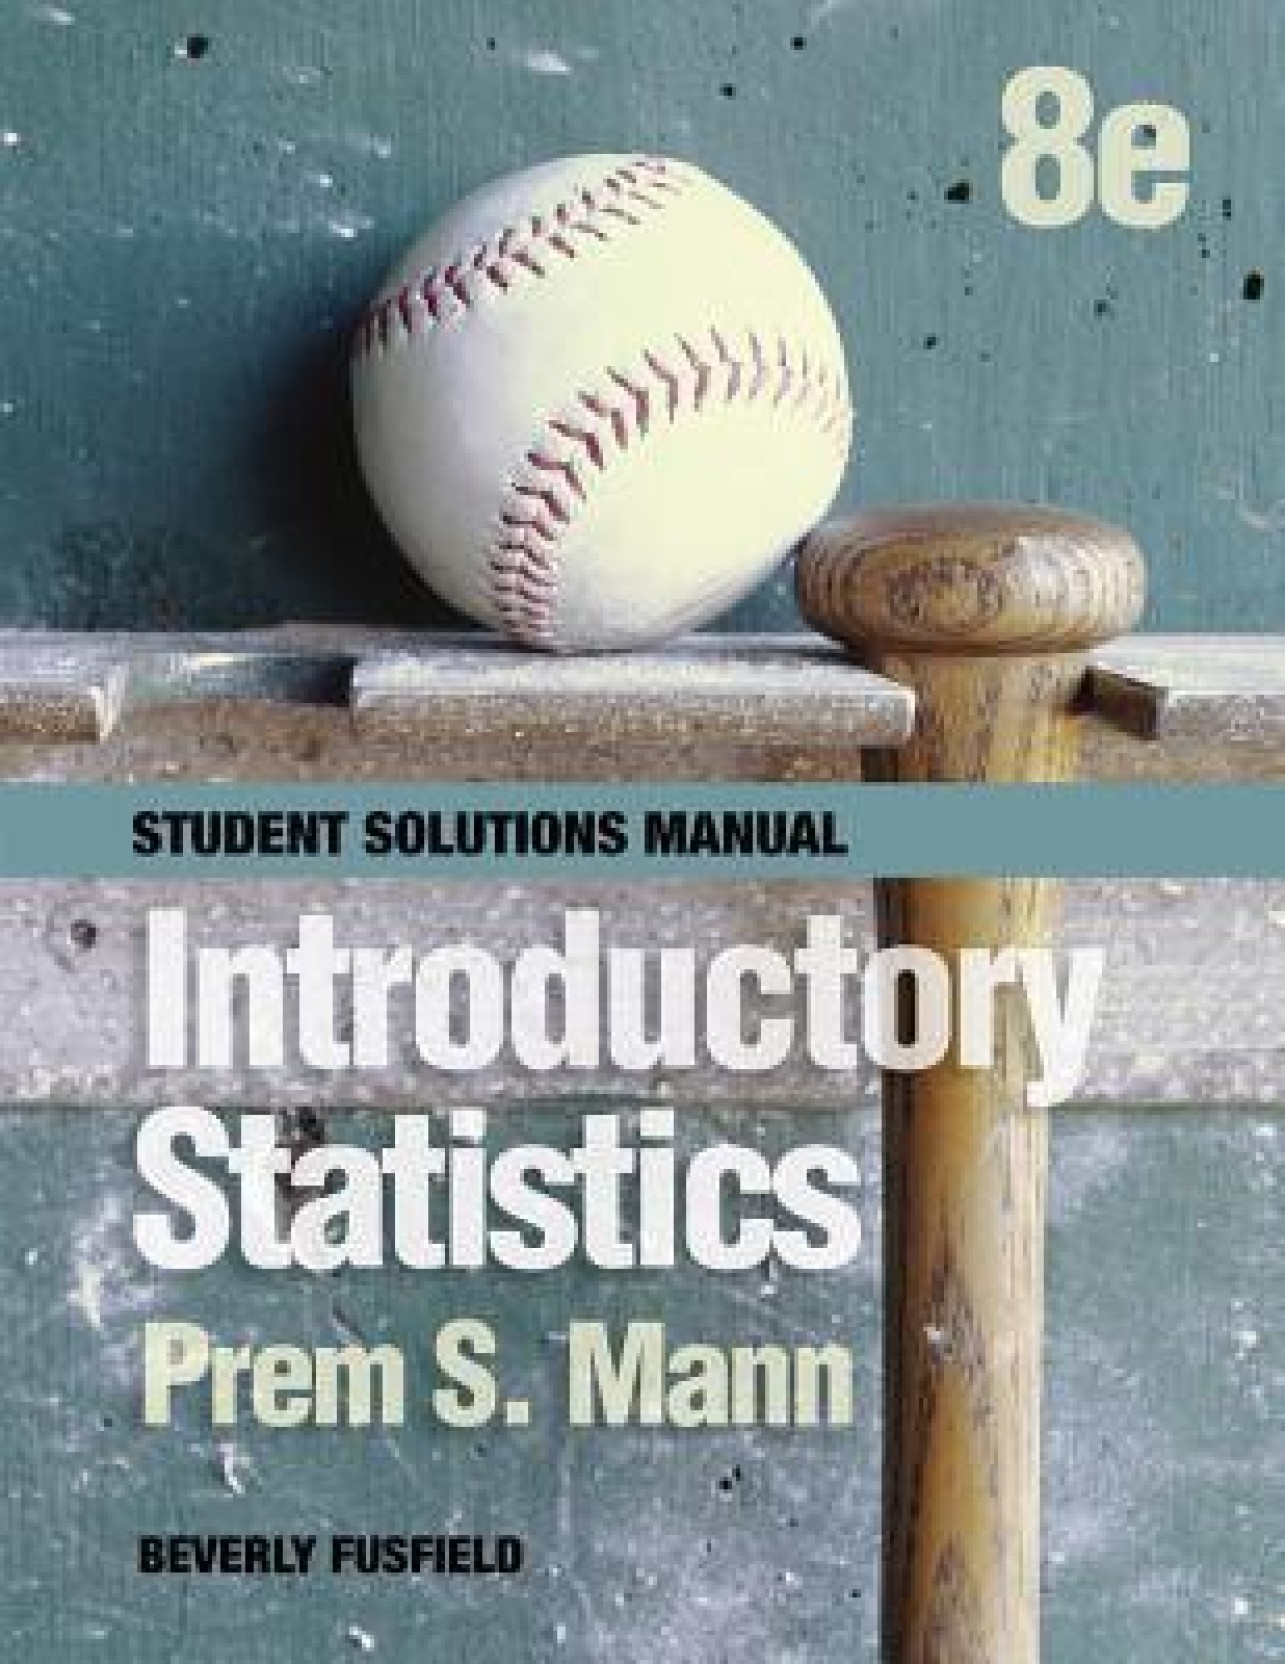 Introductory Statistics, Student Solutions Manual. Share